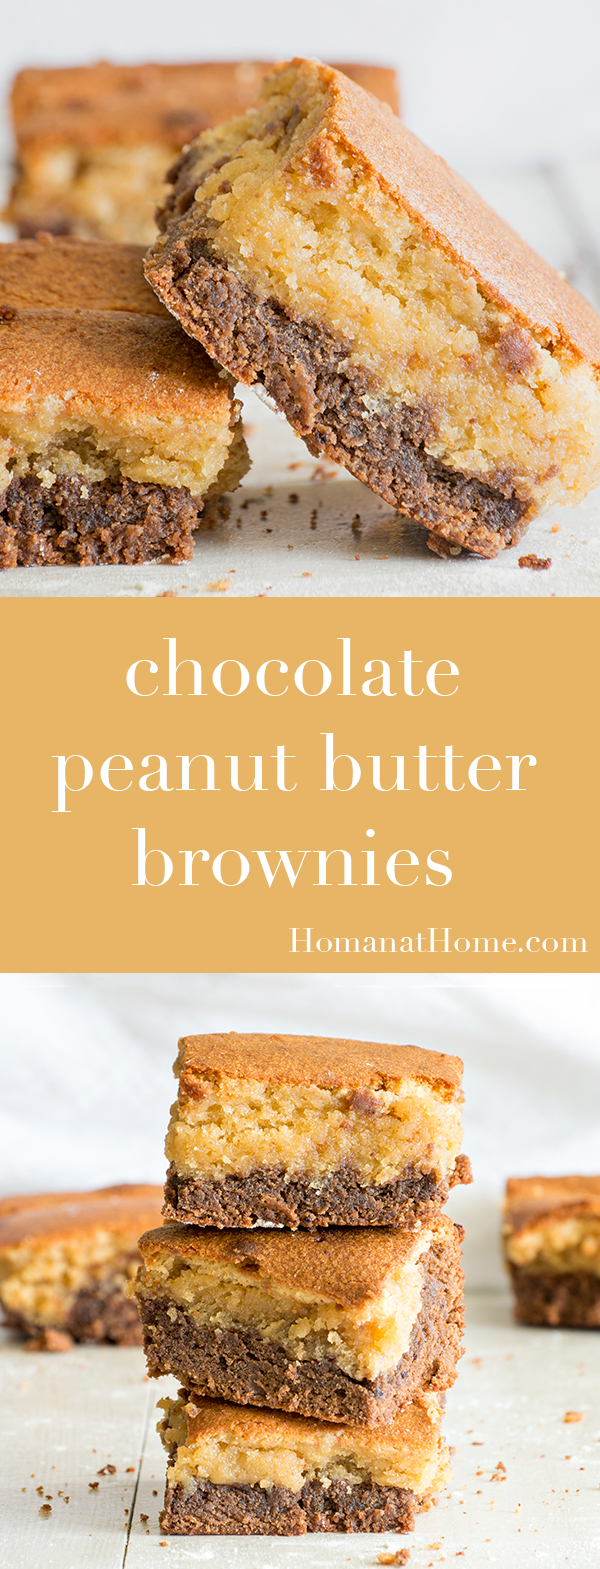 Chocolate Peanut Butter Brownies | Homan at Home